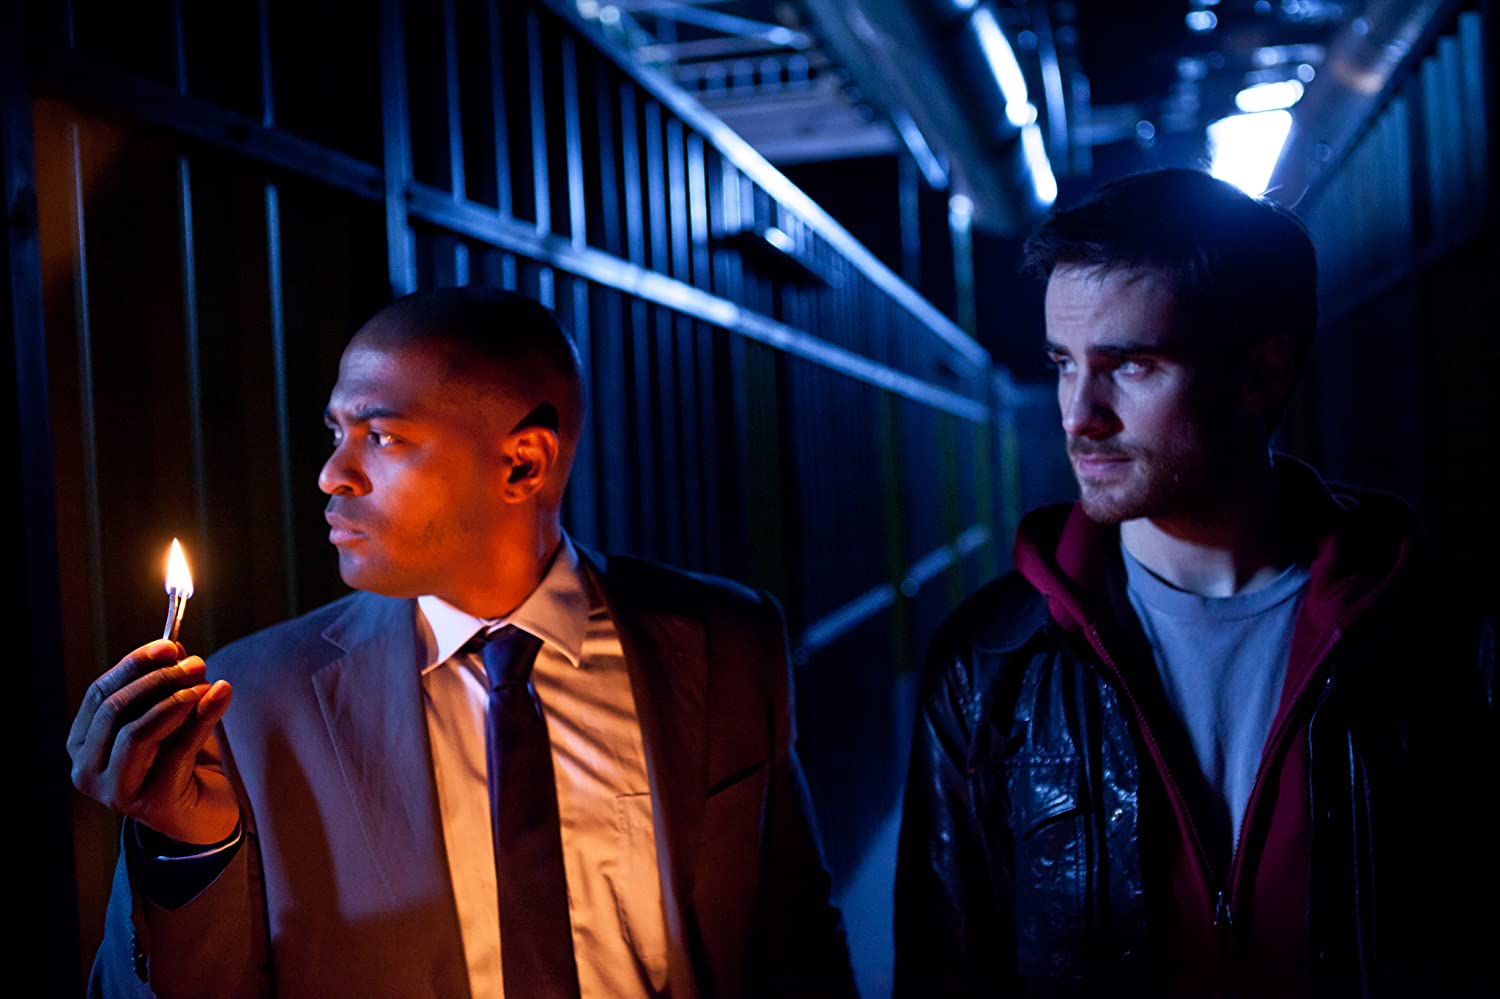 Noel Clarke and Colin O'Donoghue in Storage 24 (2012)